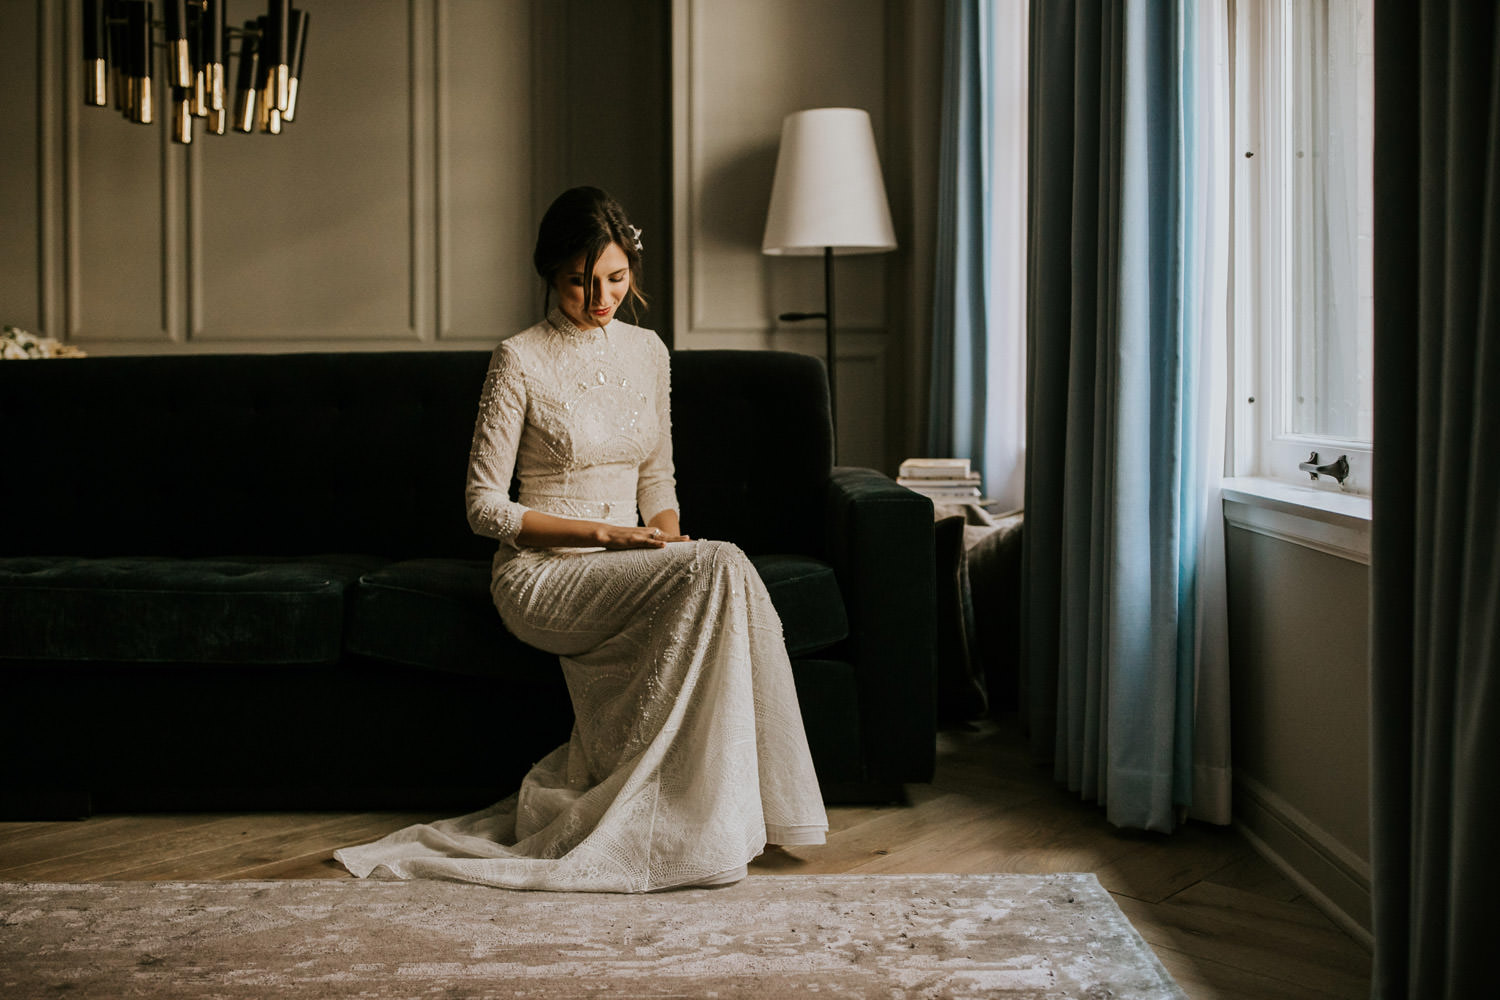 moody portrait of the bride take at the gray hotel in chicago before the wedding ceremony